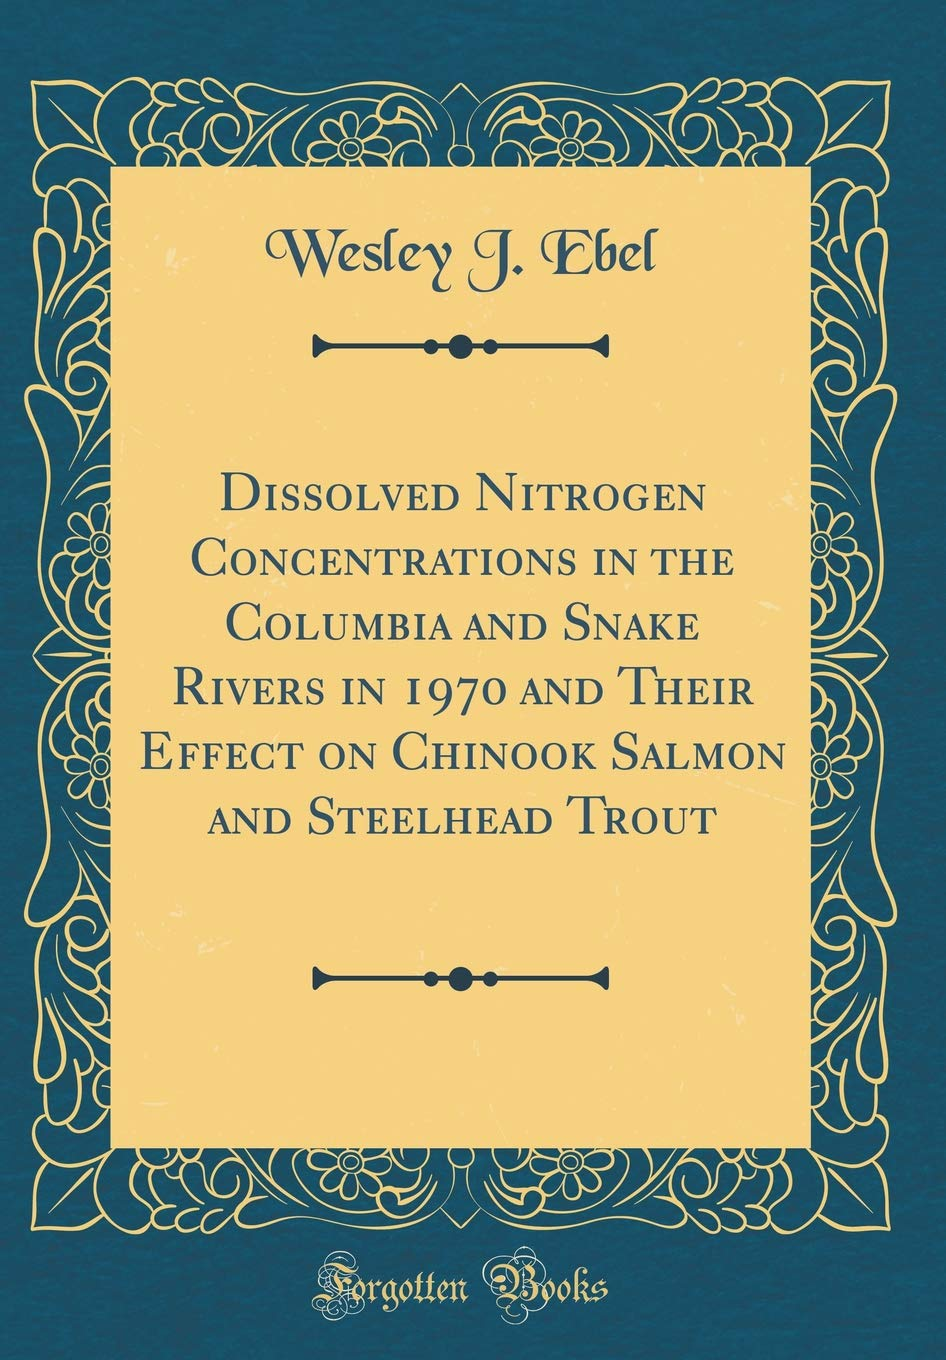 Dissolved Nitrogen Concentrations in the Columbia and Snake Rivers in 1970 and Their Effect on Chinook Salmon and Steelhead Trout (Classic Reprint) ebook